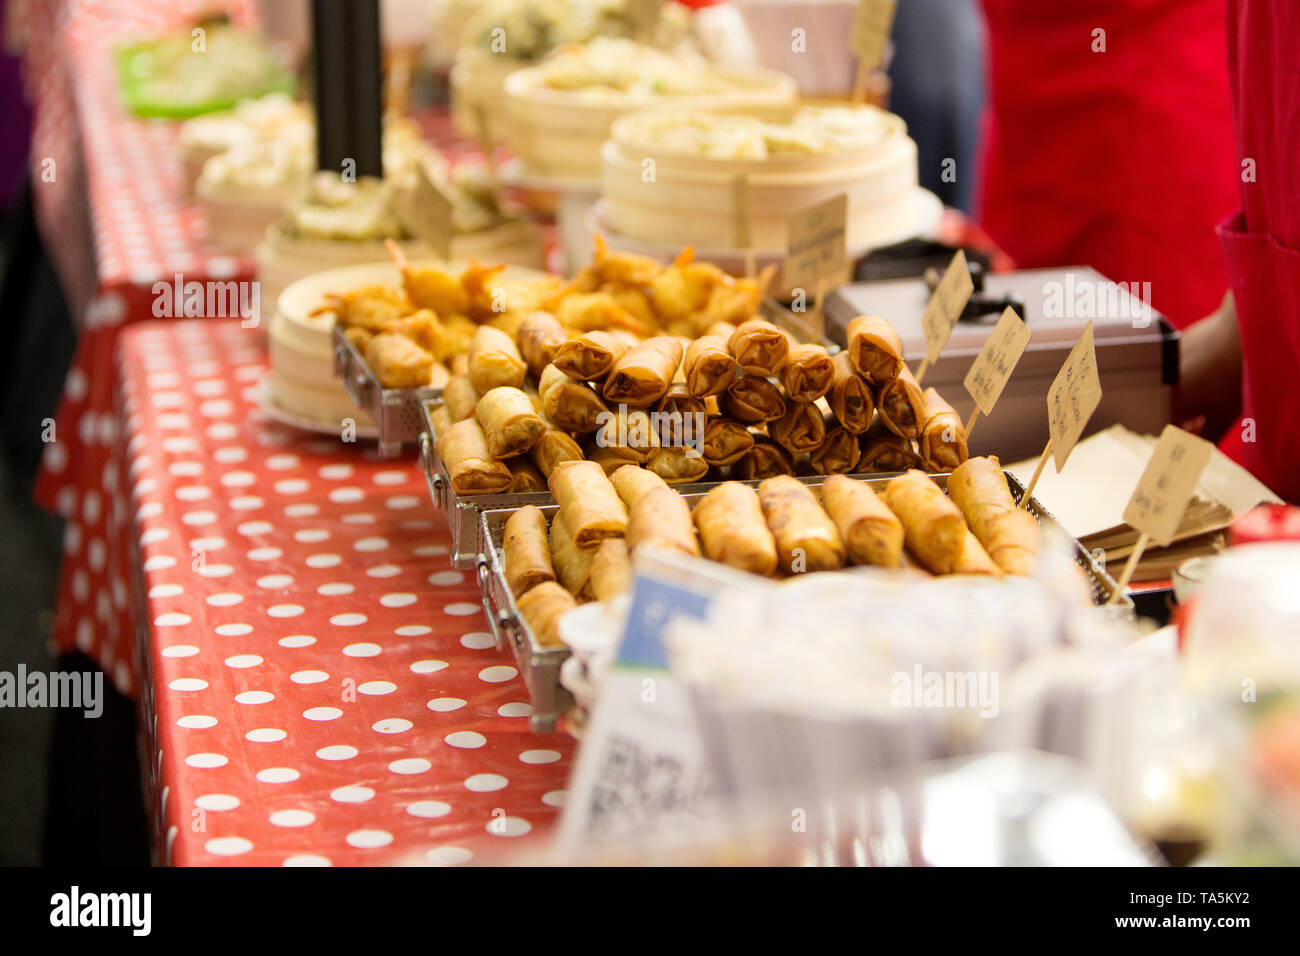 A pile of spring roll food snack on display at a food market. - Stock Image